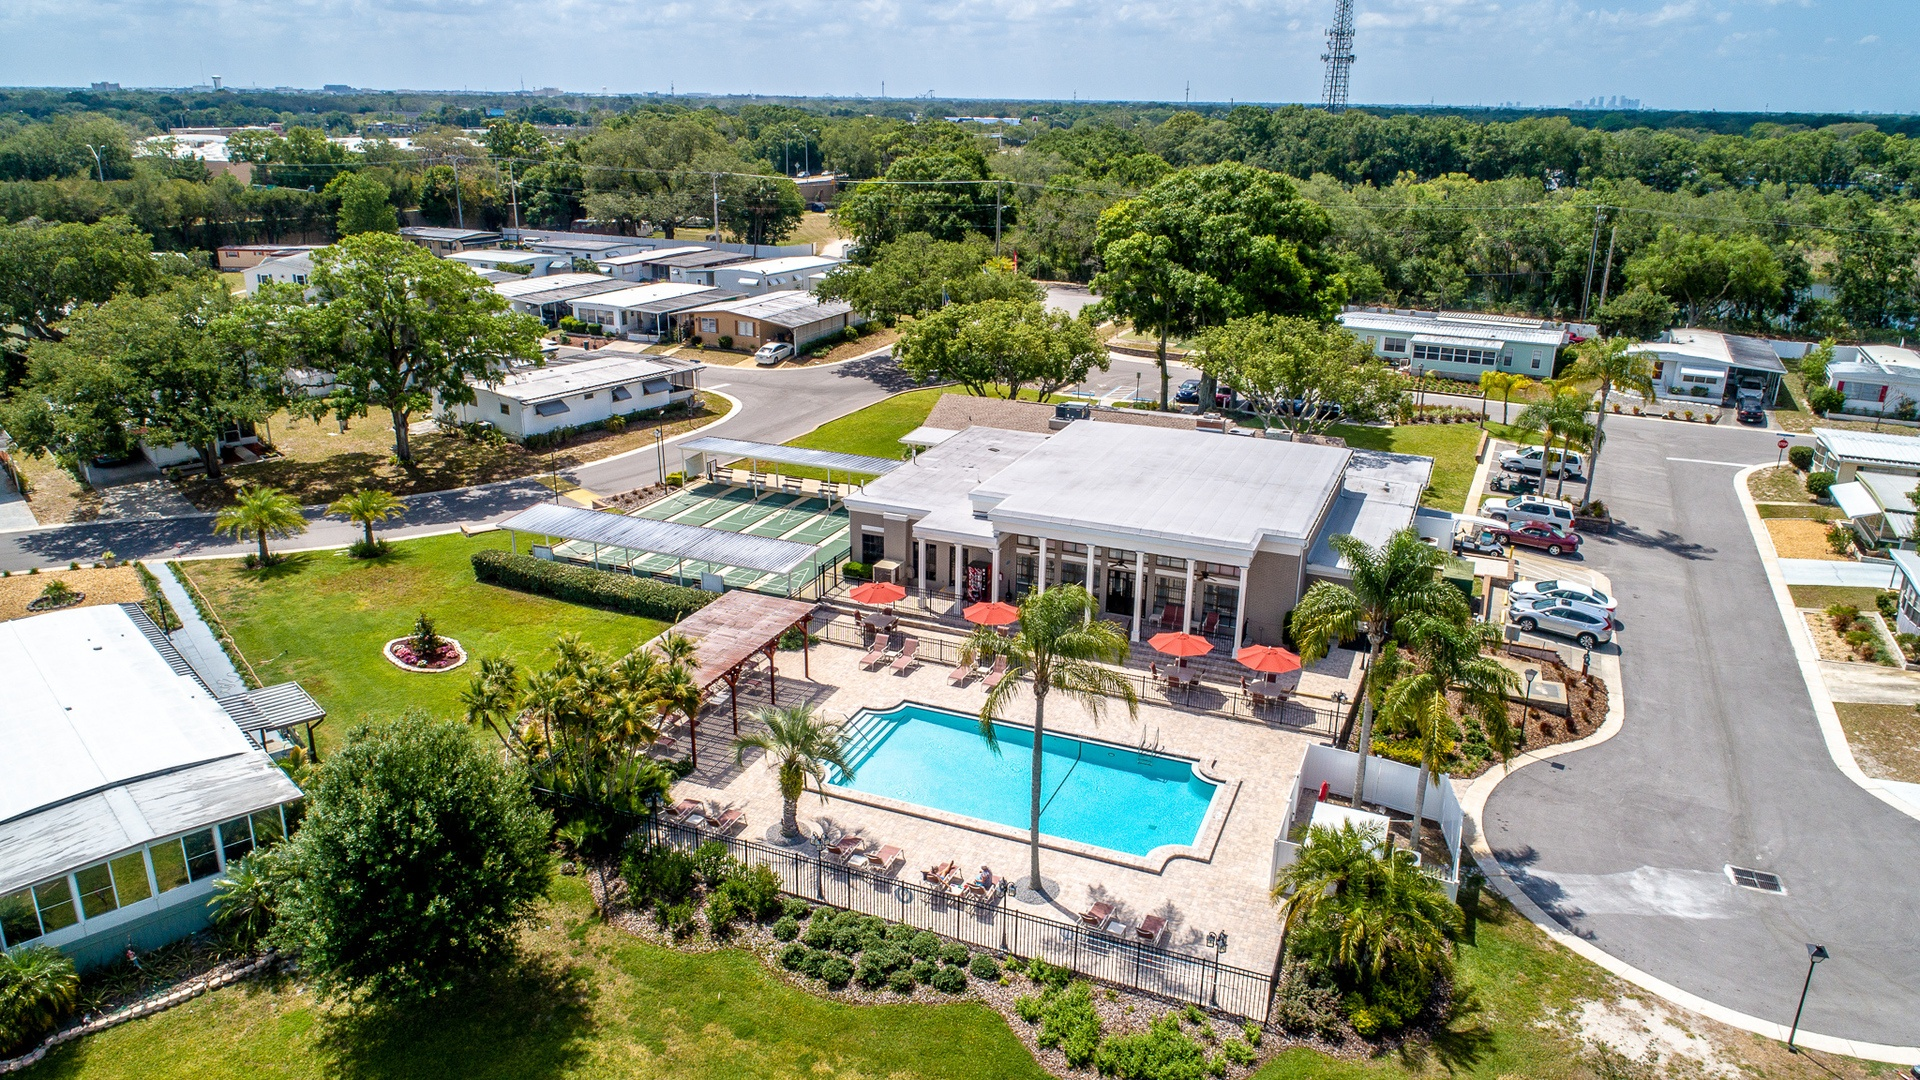 Lakeshore Villas 55+ Manufactured Homes Community Clubhouse Complex Aerial View in Tampa, FL